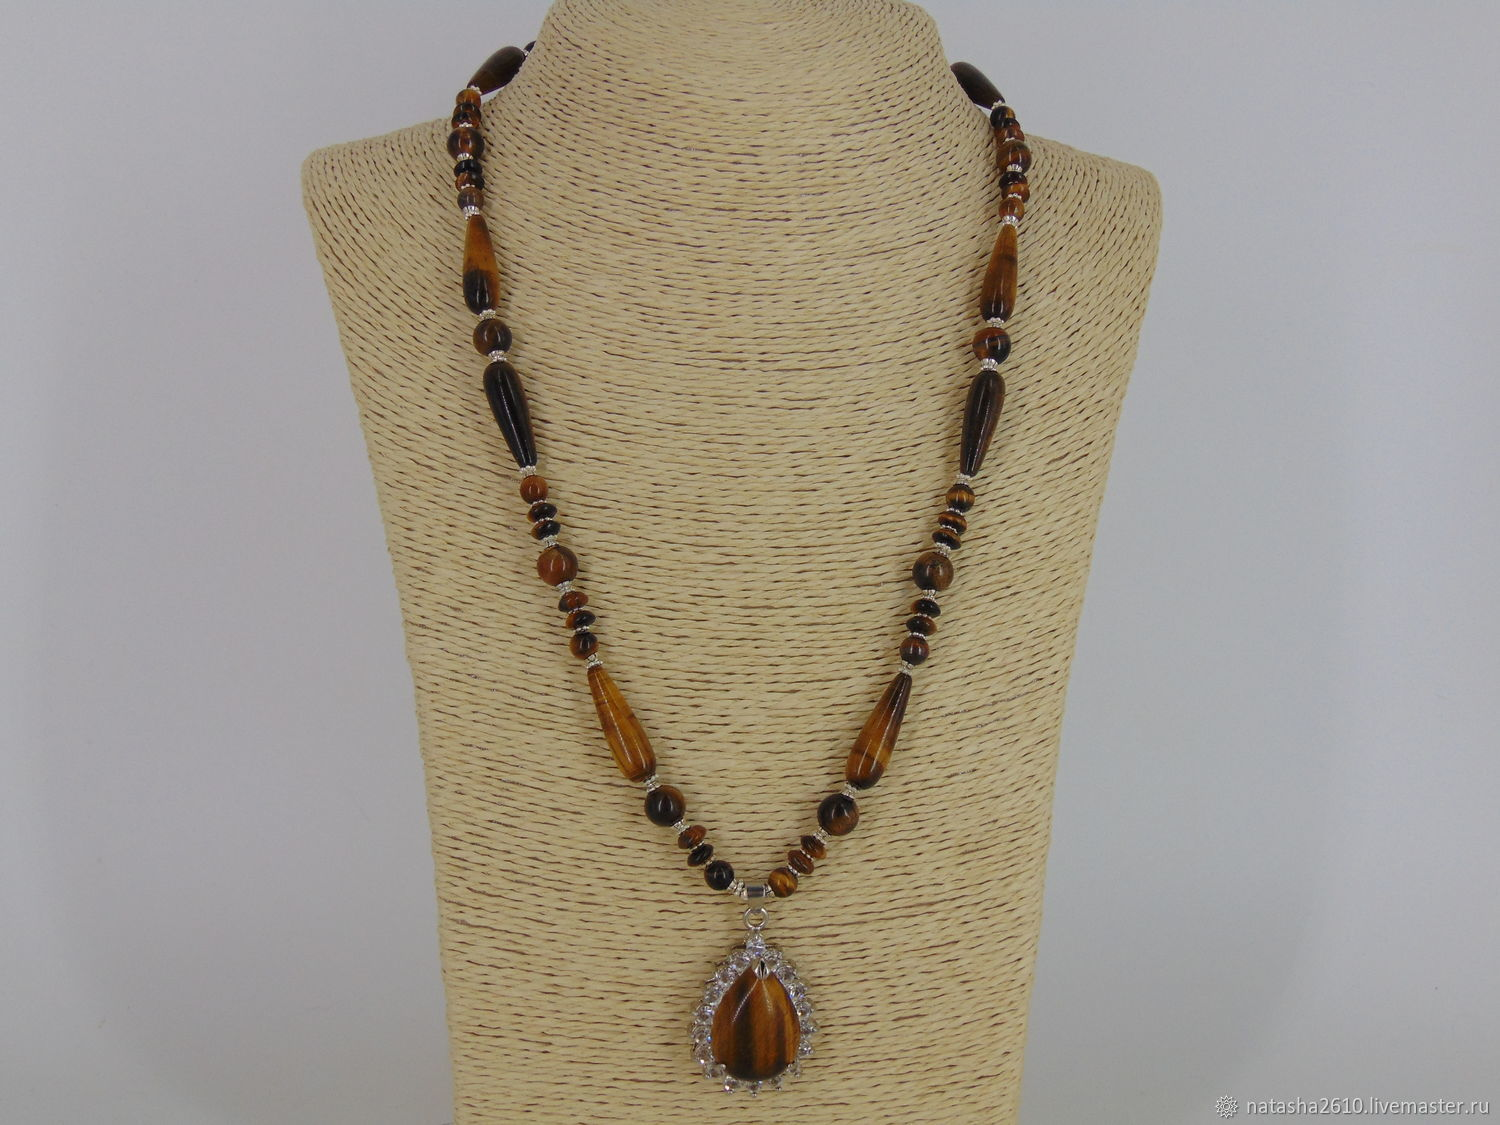 Necklace with pendant made of natural stones tiger's eye 'Compliment', Necklace, Velikiy Novgorod,  Фото №1